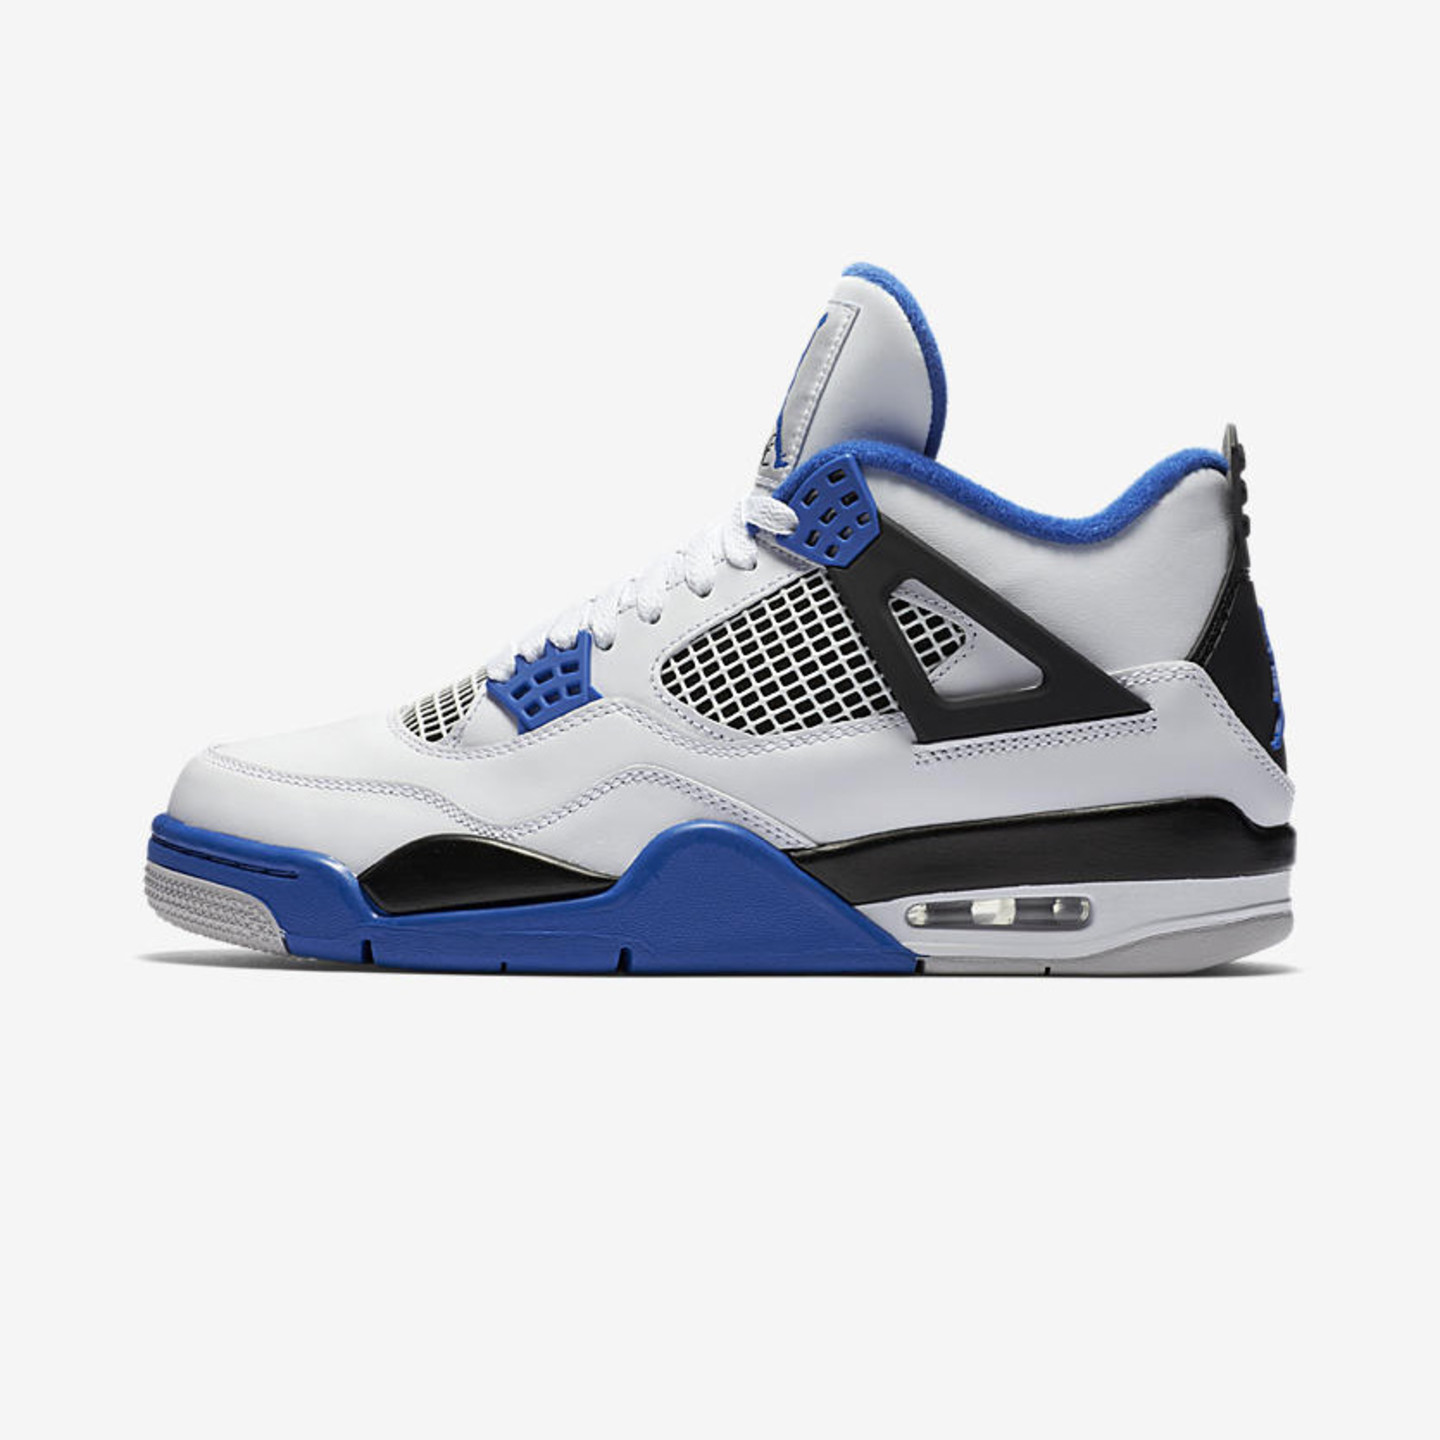 Jordan Air Jordan 4 Retro 'Motorsport' White / Game Royal / Black 308497-117-42.5